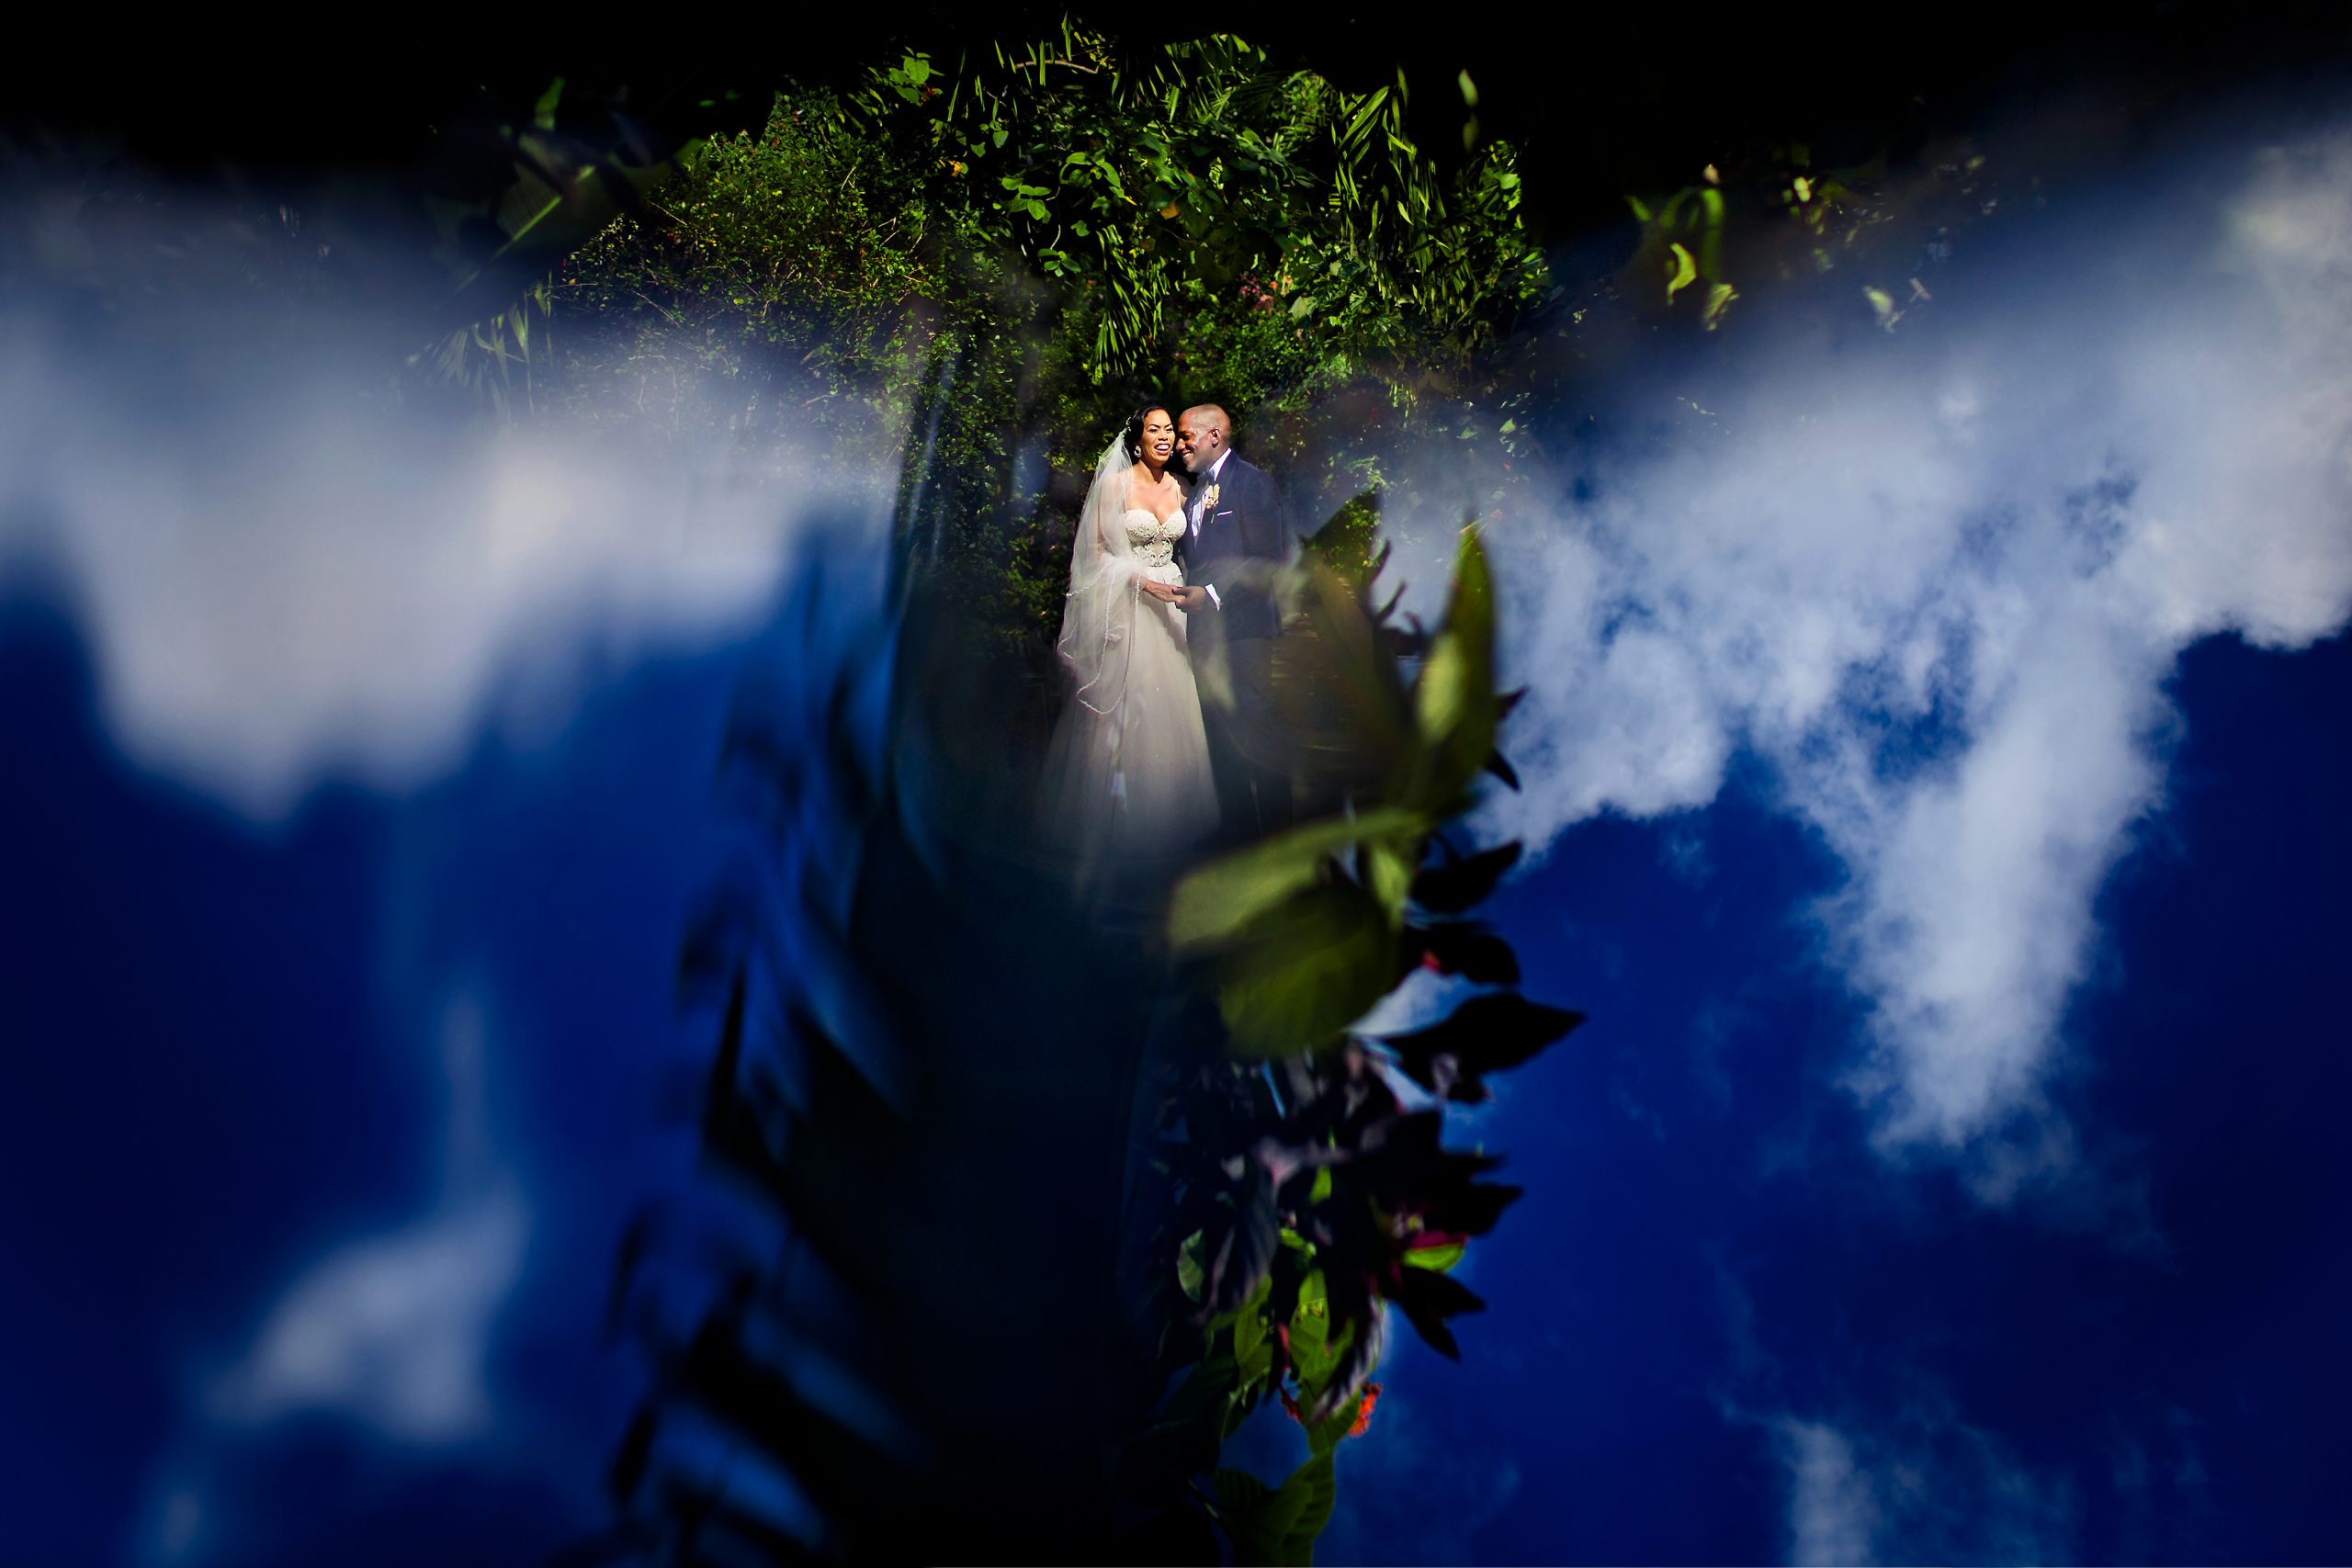 Reflection of the sky surrounds the newly wed couple.